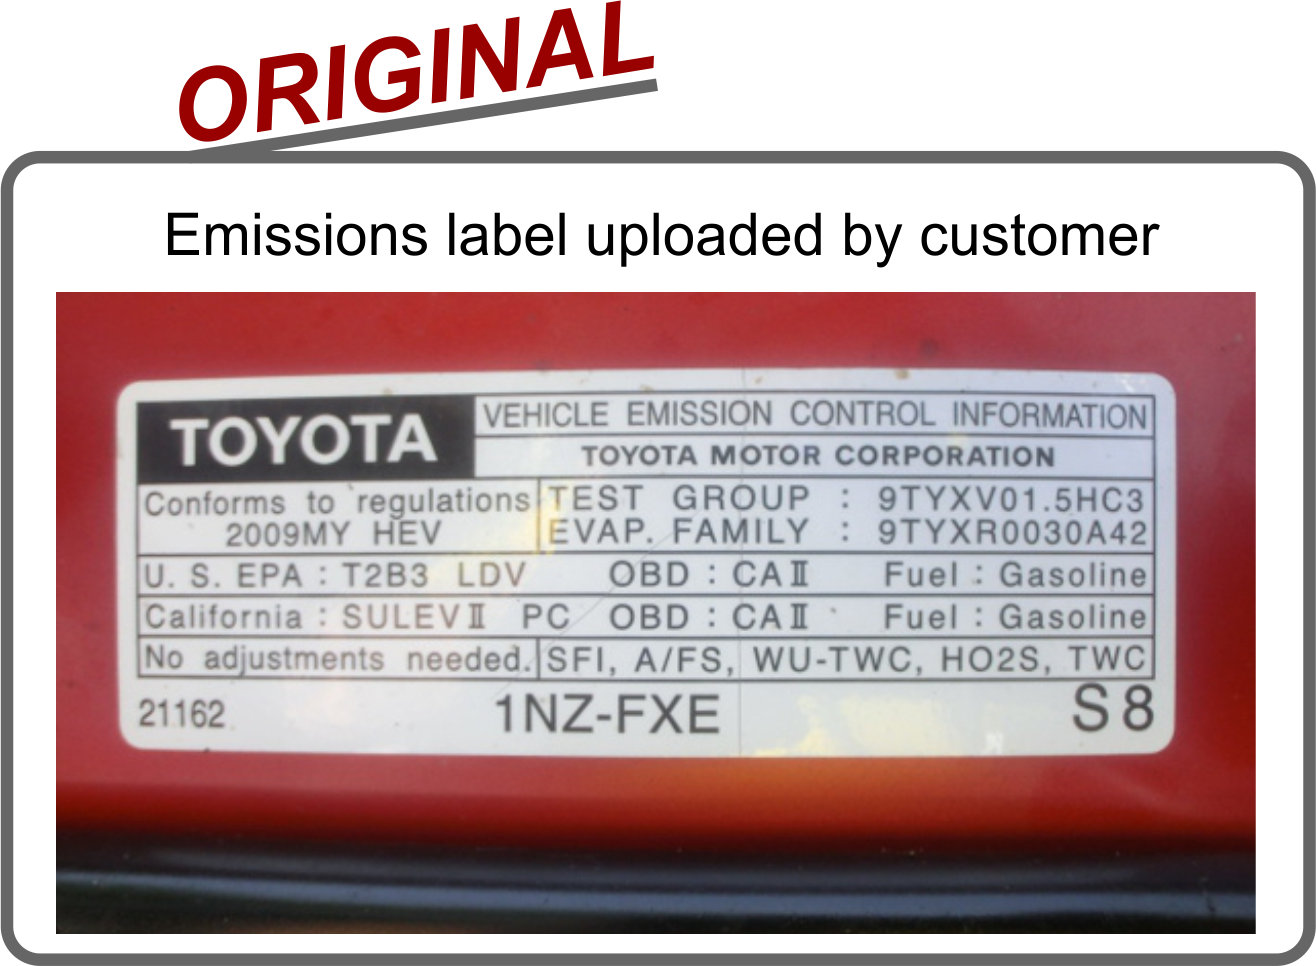 Vehicle emission conntrol replacement label